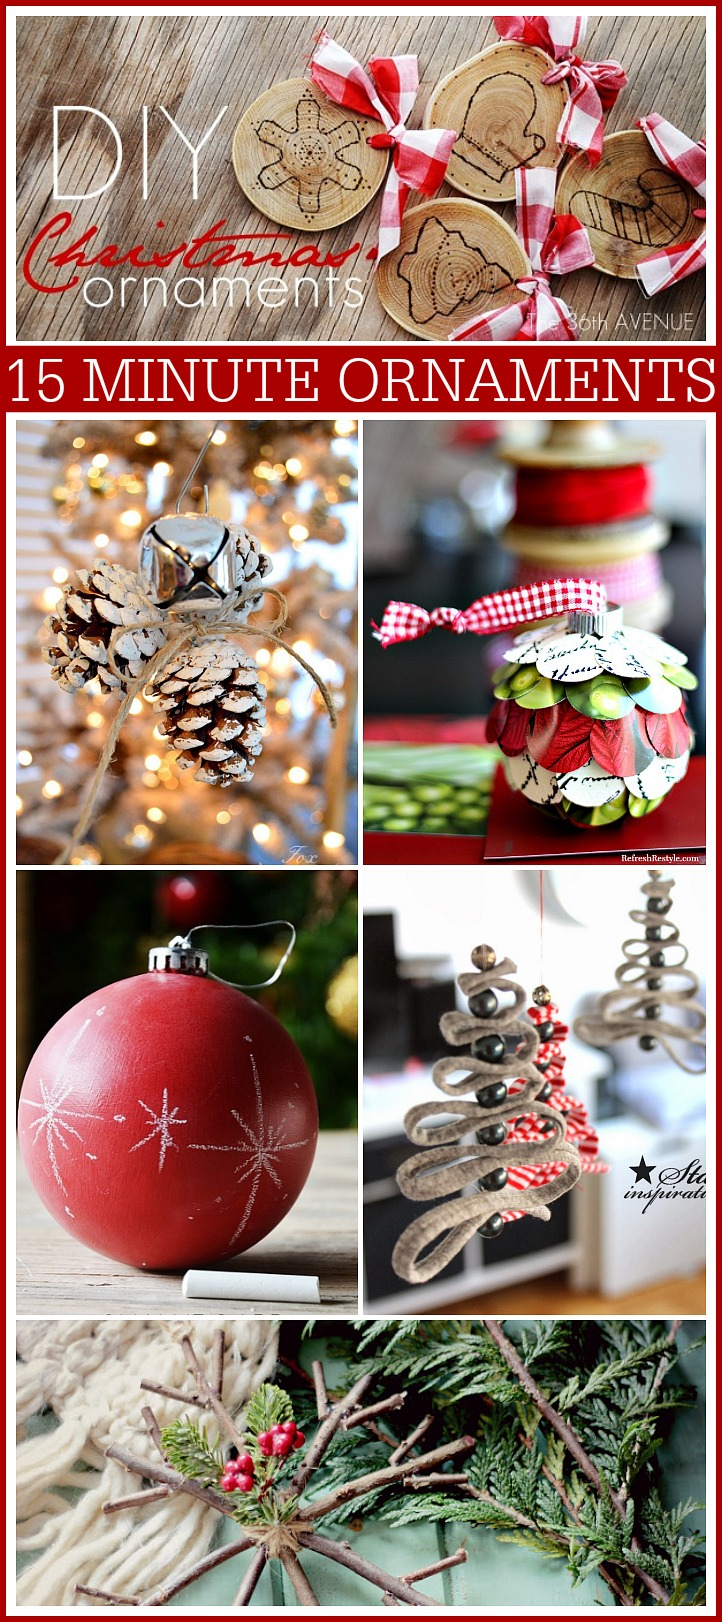 15 Minute DIY Christmas Ornaments - The 36th AVENUE